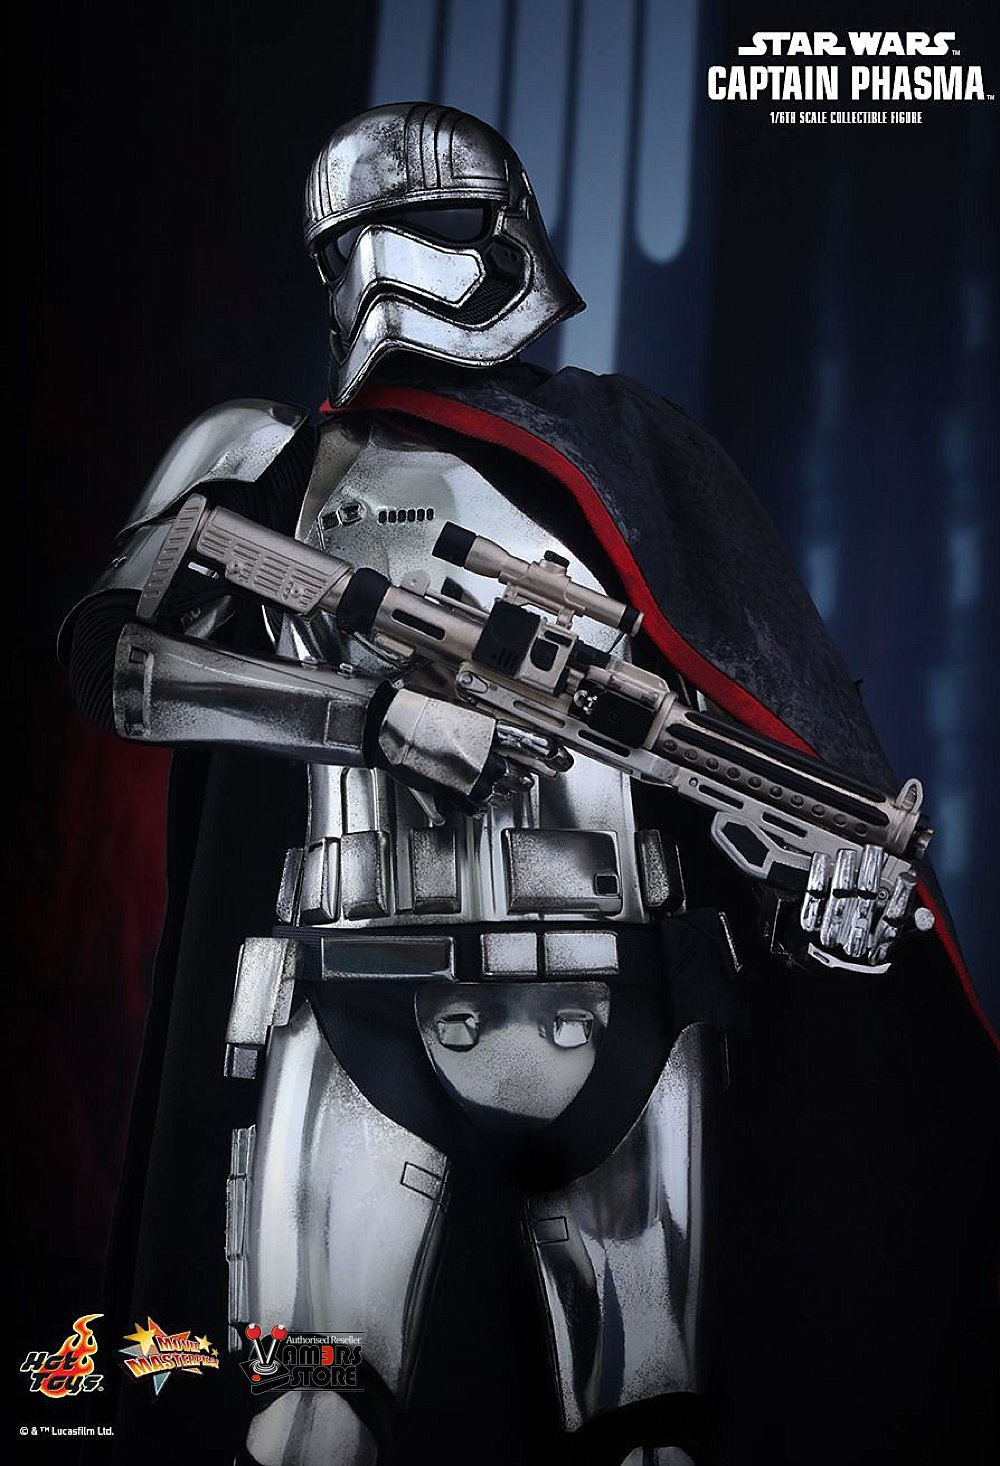 Vamers-Store-Hot-Toys-MMS328-Disneys-Star-Wars-Episode-VII-The-Force-Awakens-Captain-Phasma-05.jpg